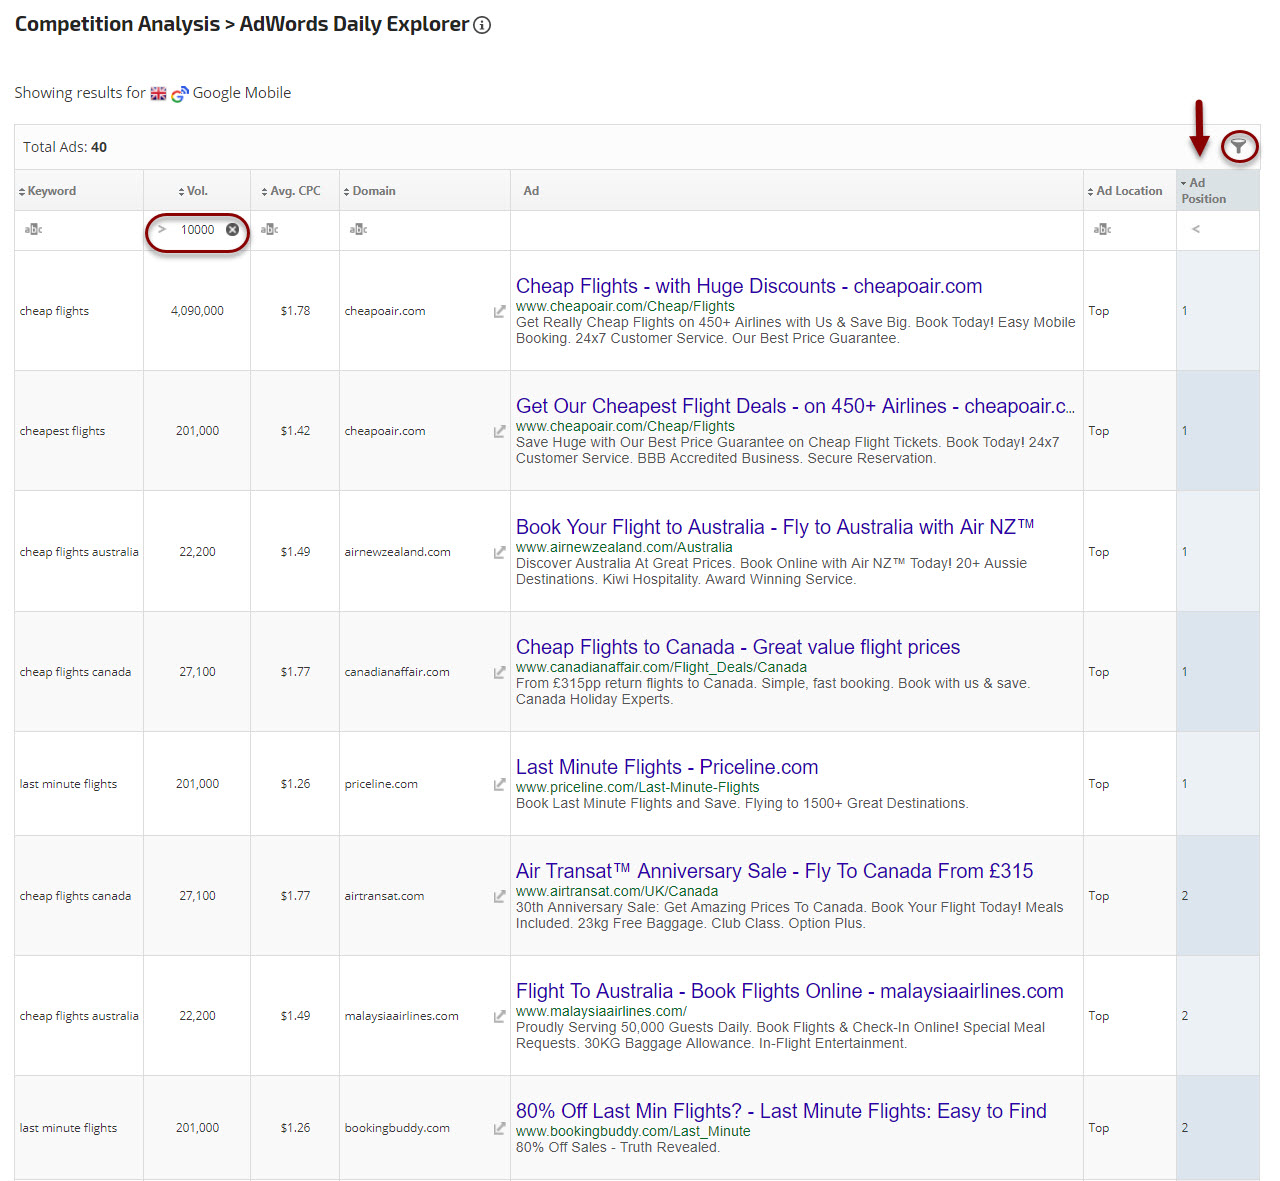 Top AdWords positions